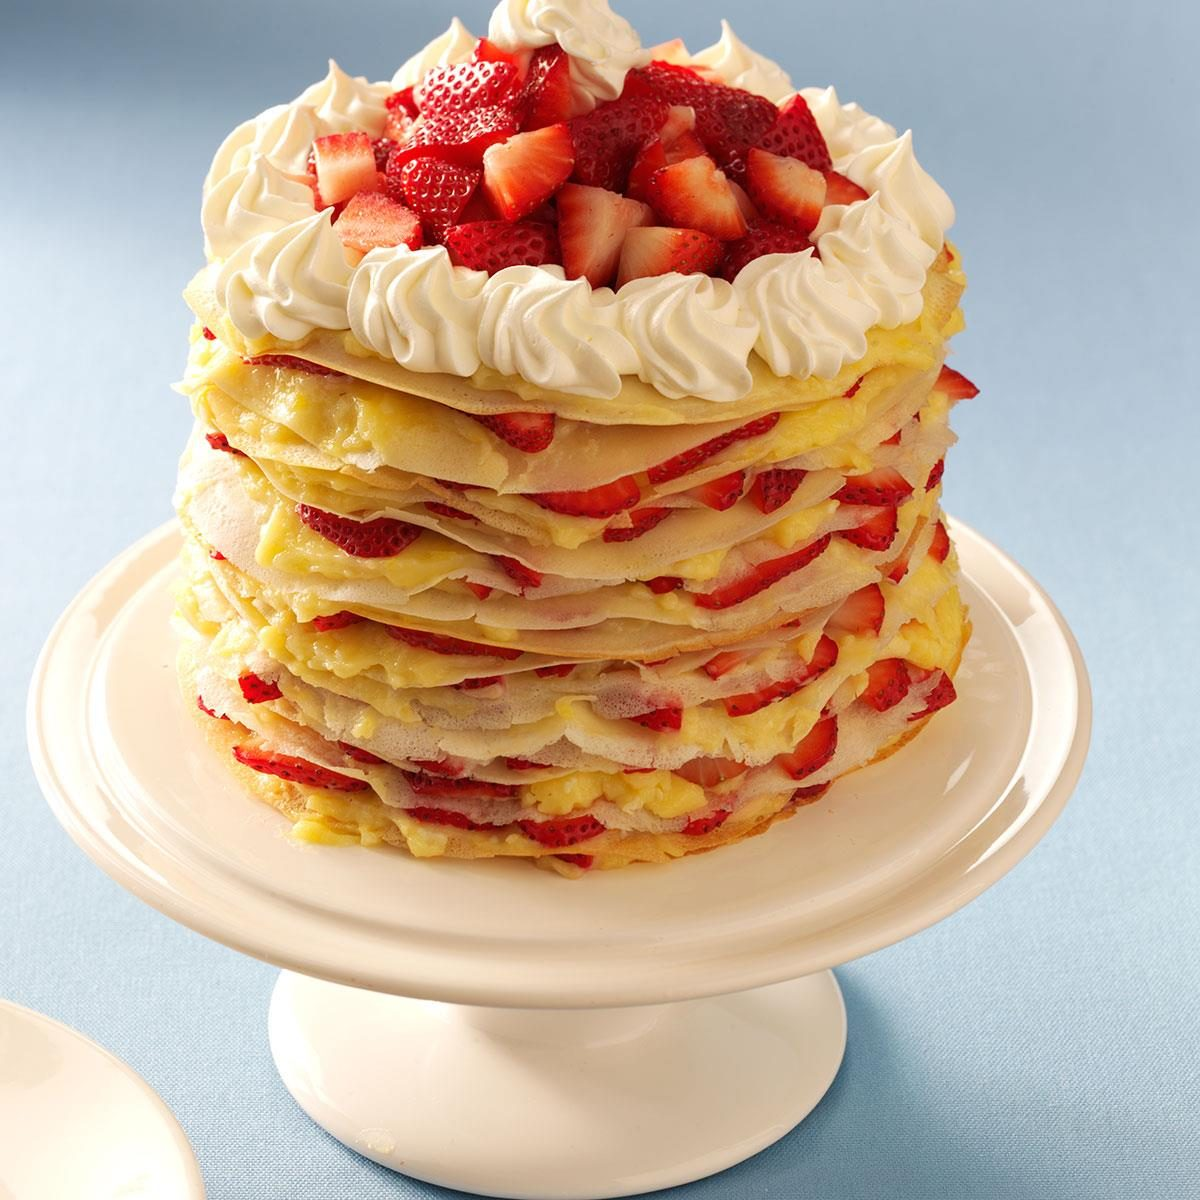 Strawberry-Lemon Crepe Cake Recipe | Taste of Home